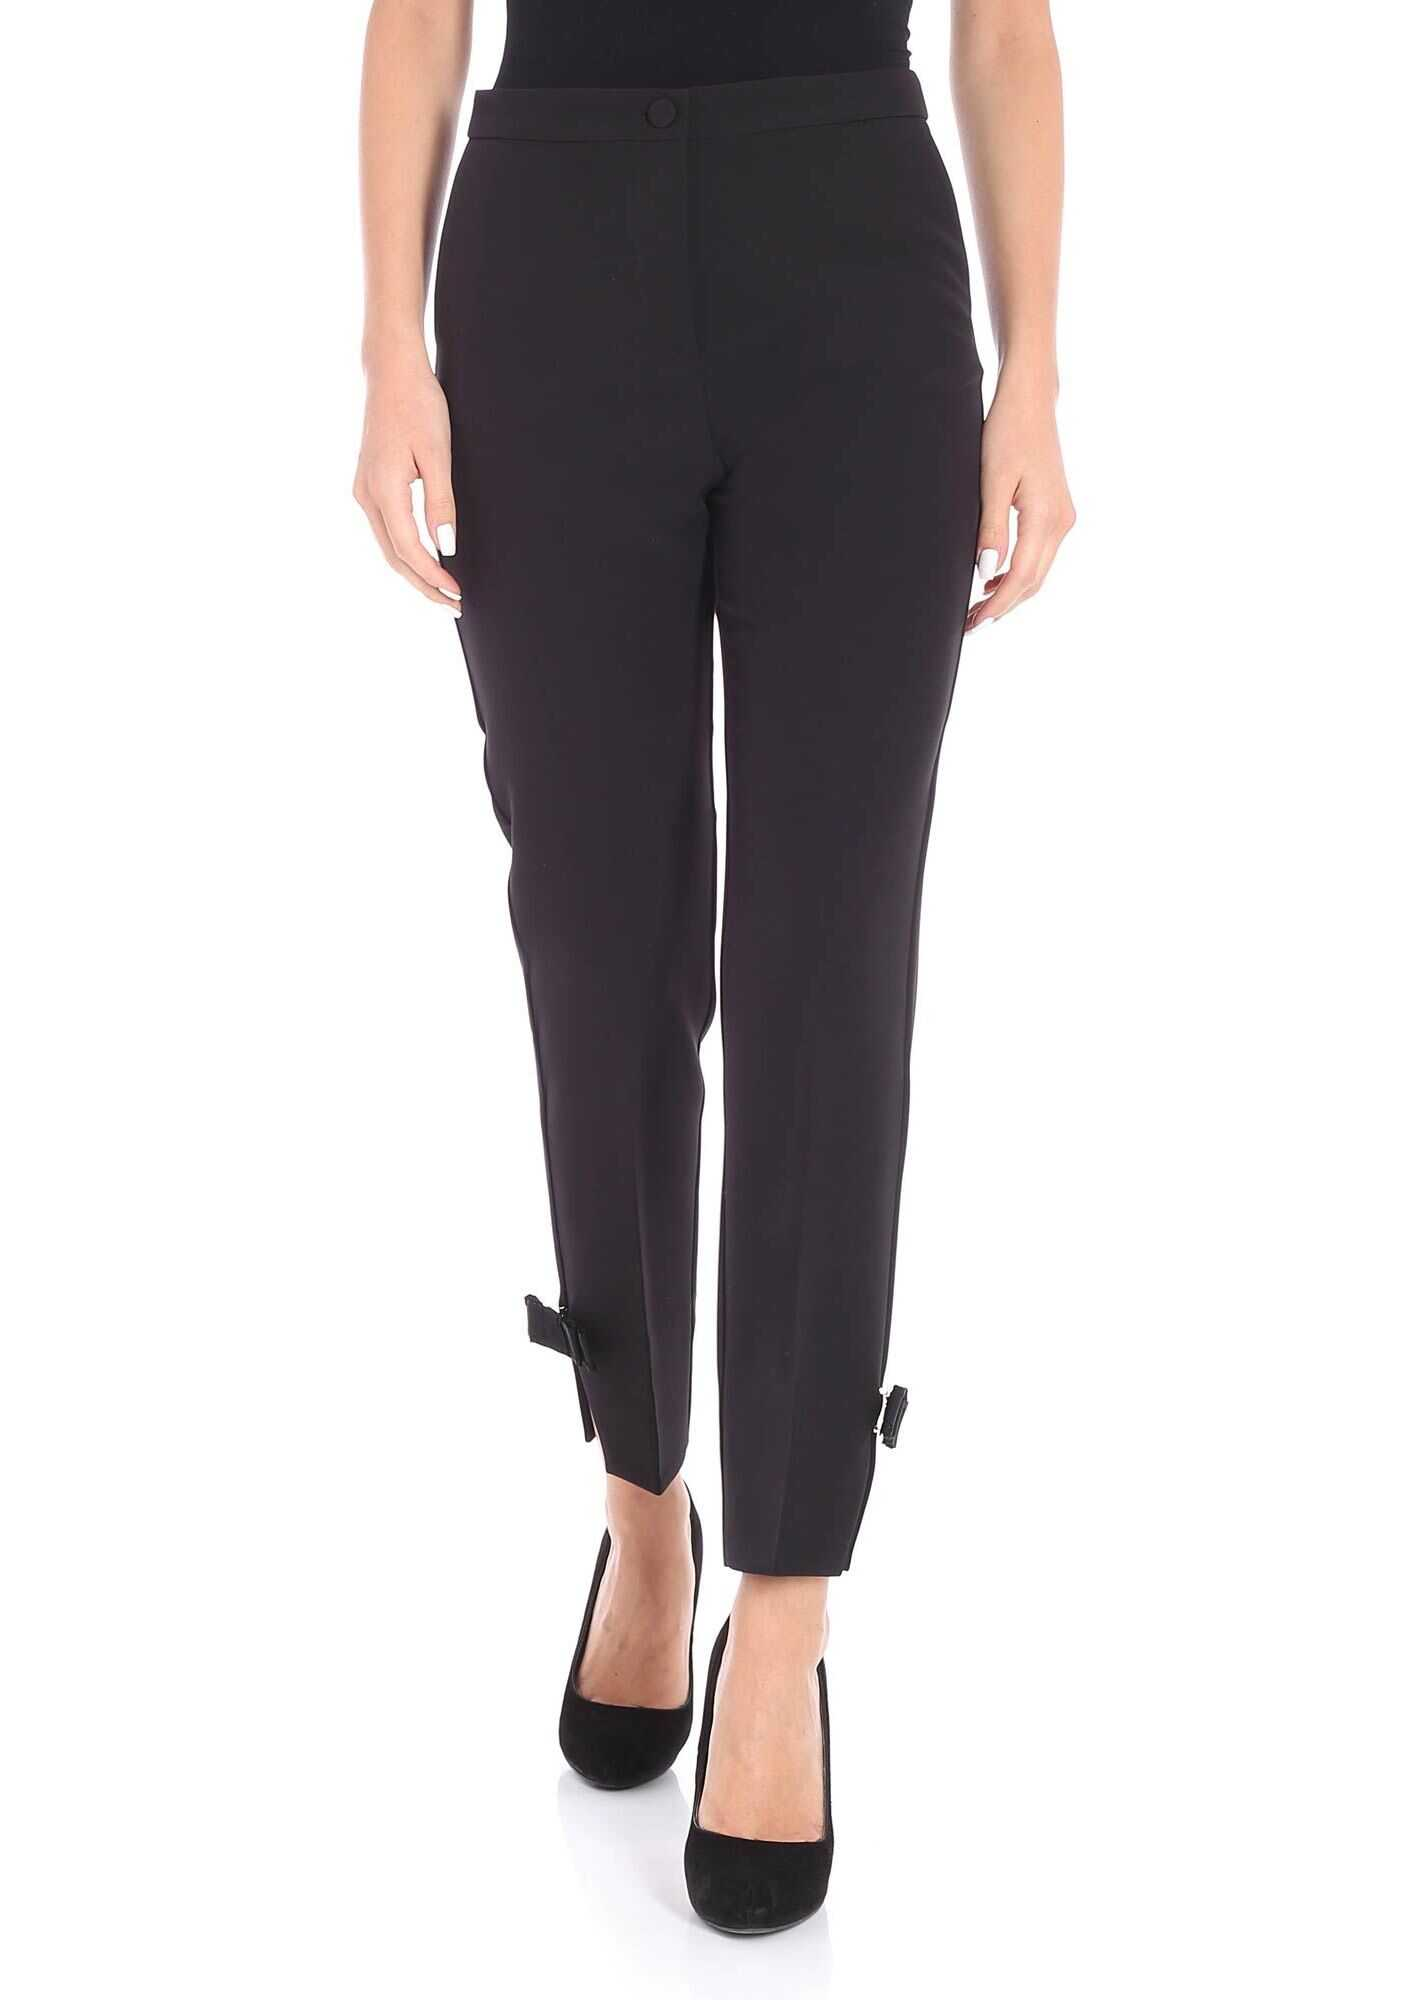 Blugirl Black Trousers With Bows Black